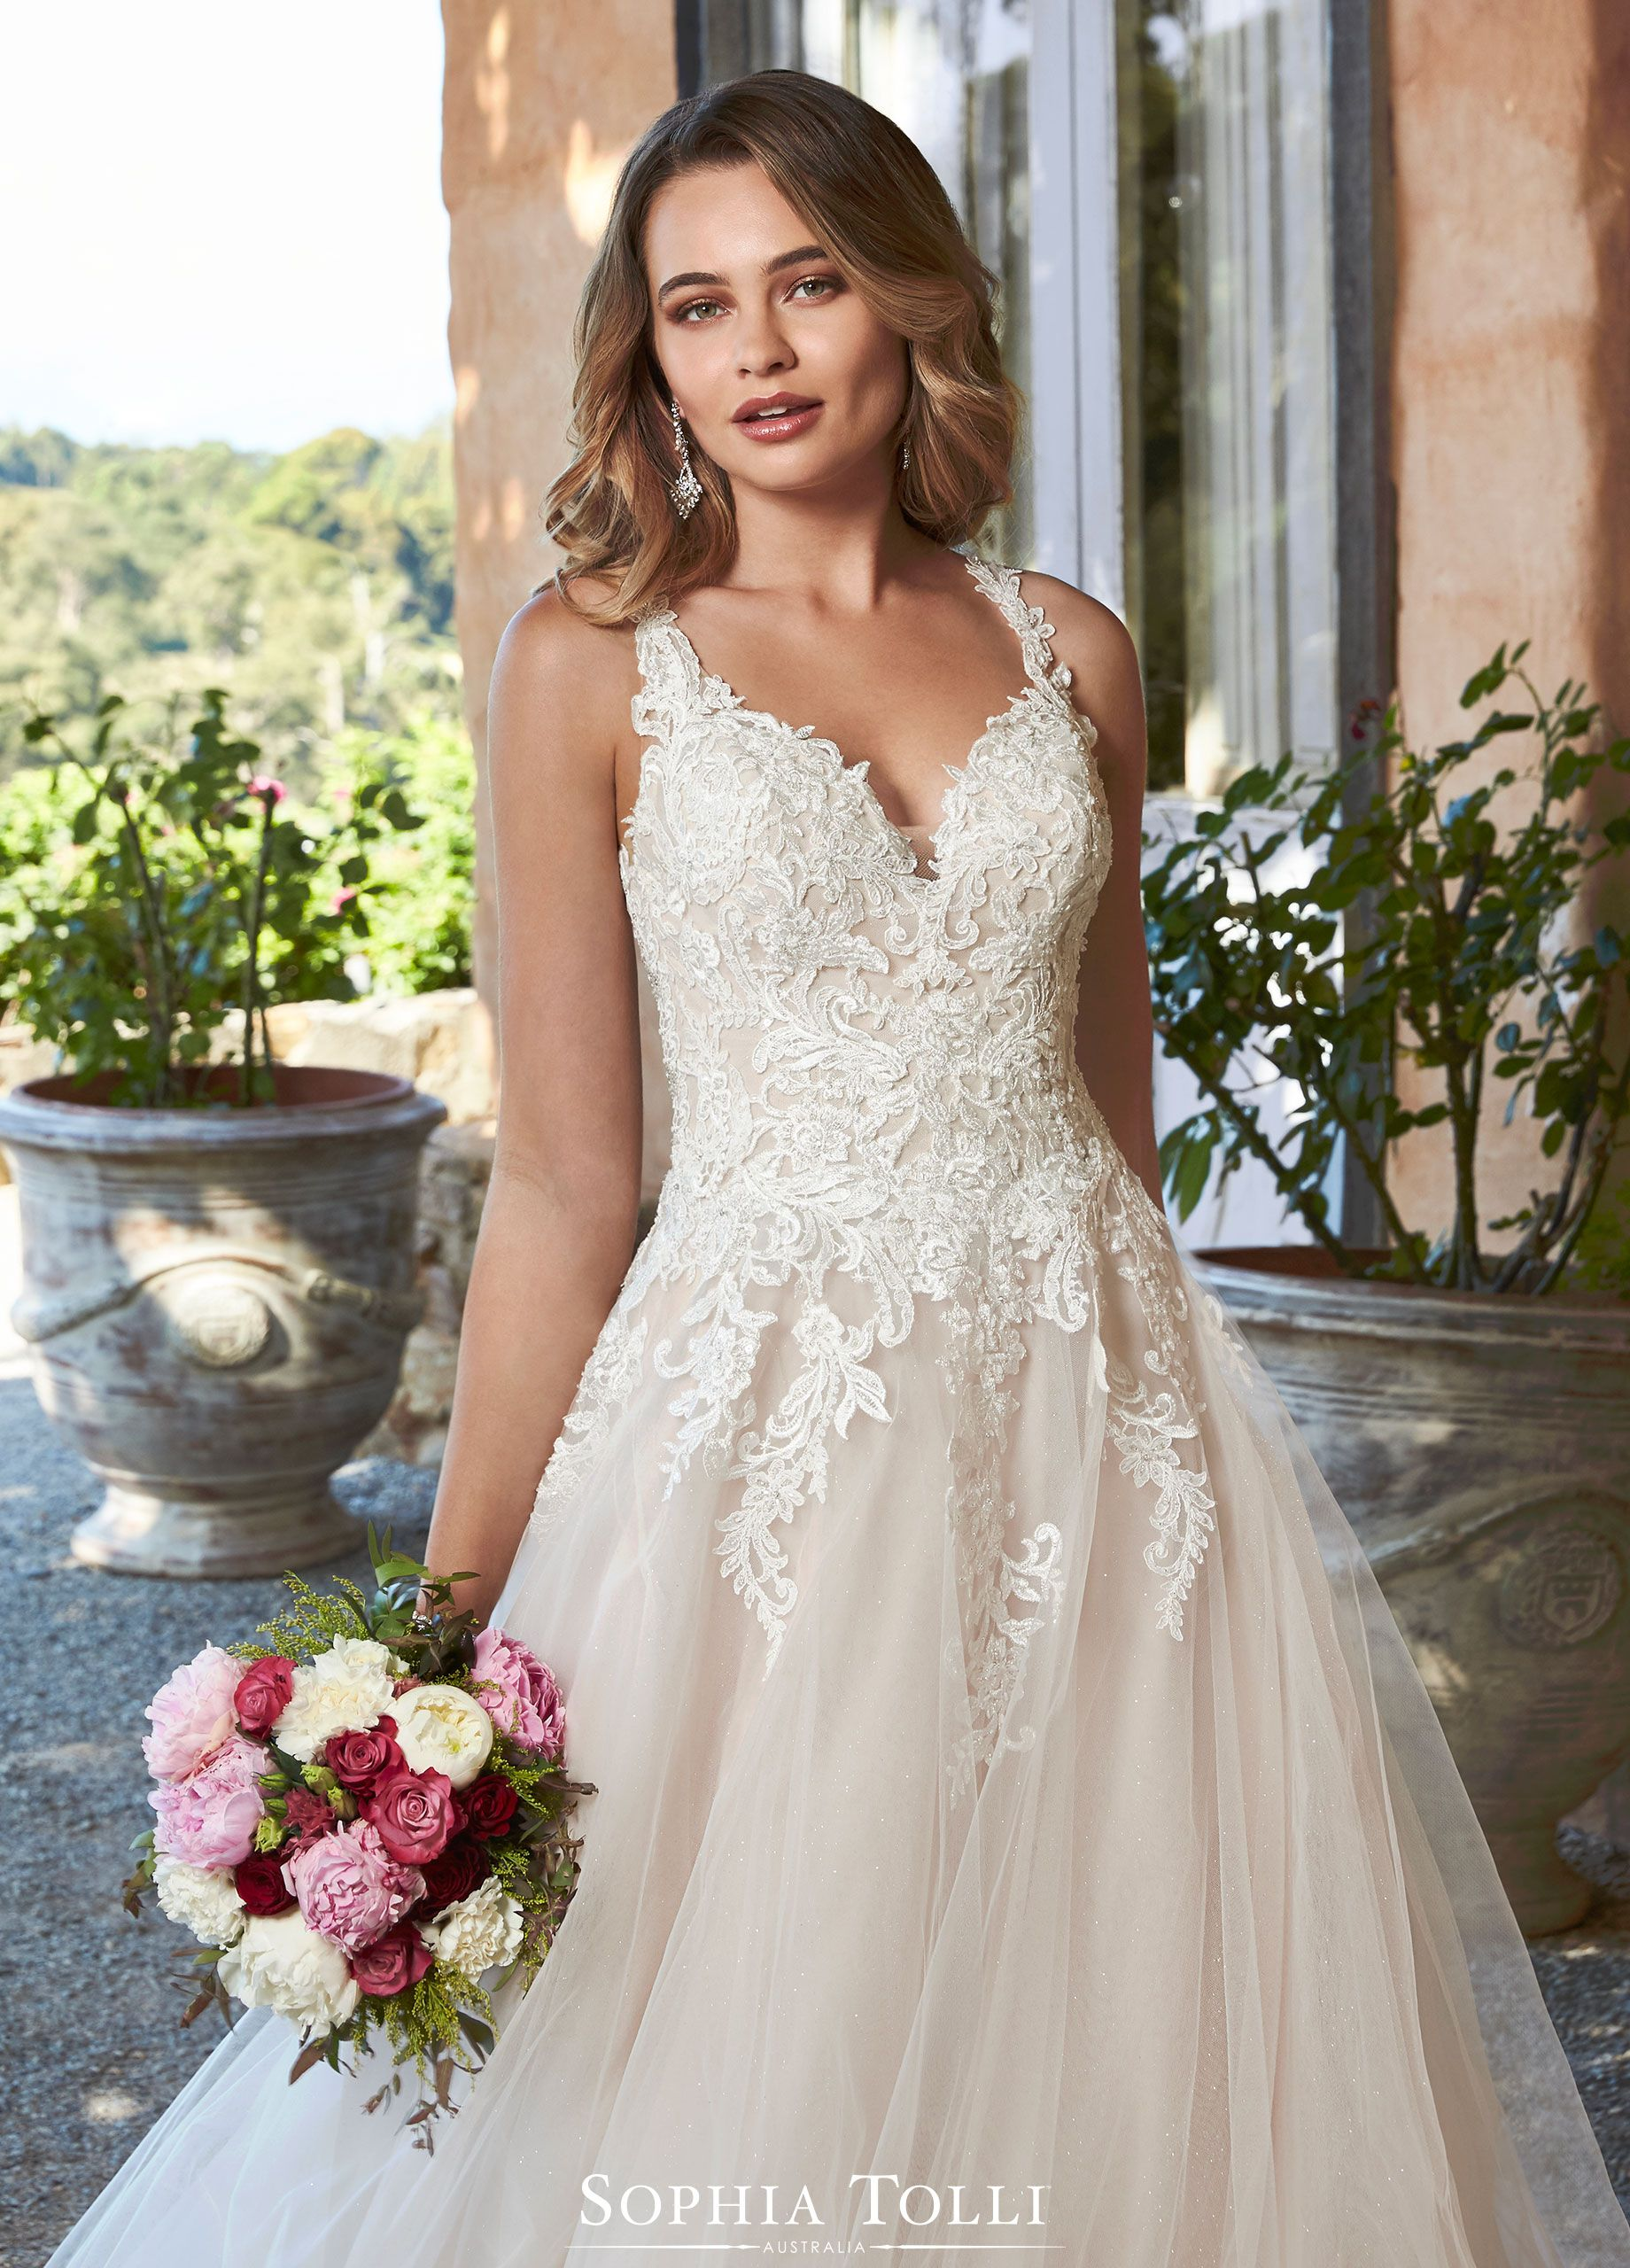 Sophia Tolli Wedding Gowns Y21977a Stephanie In 2020 Dream